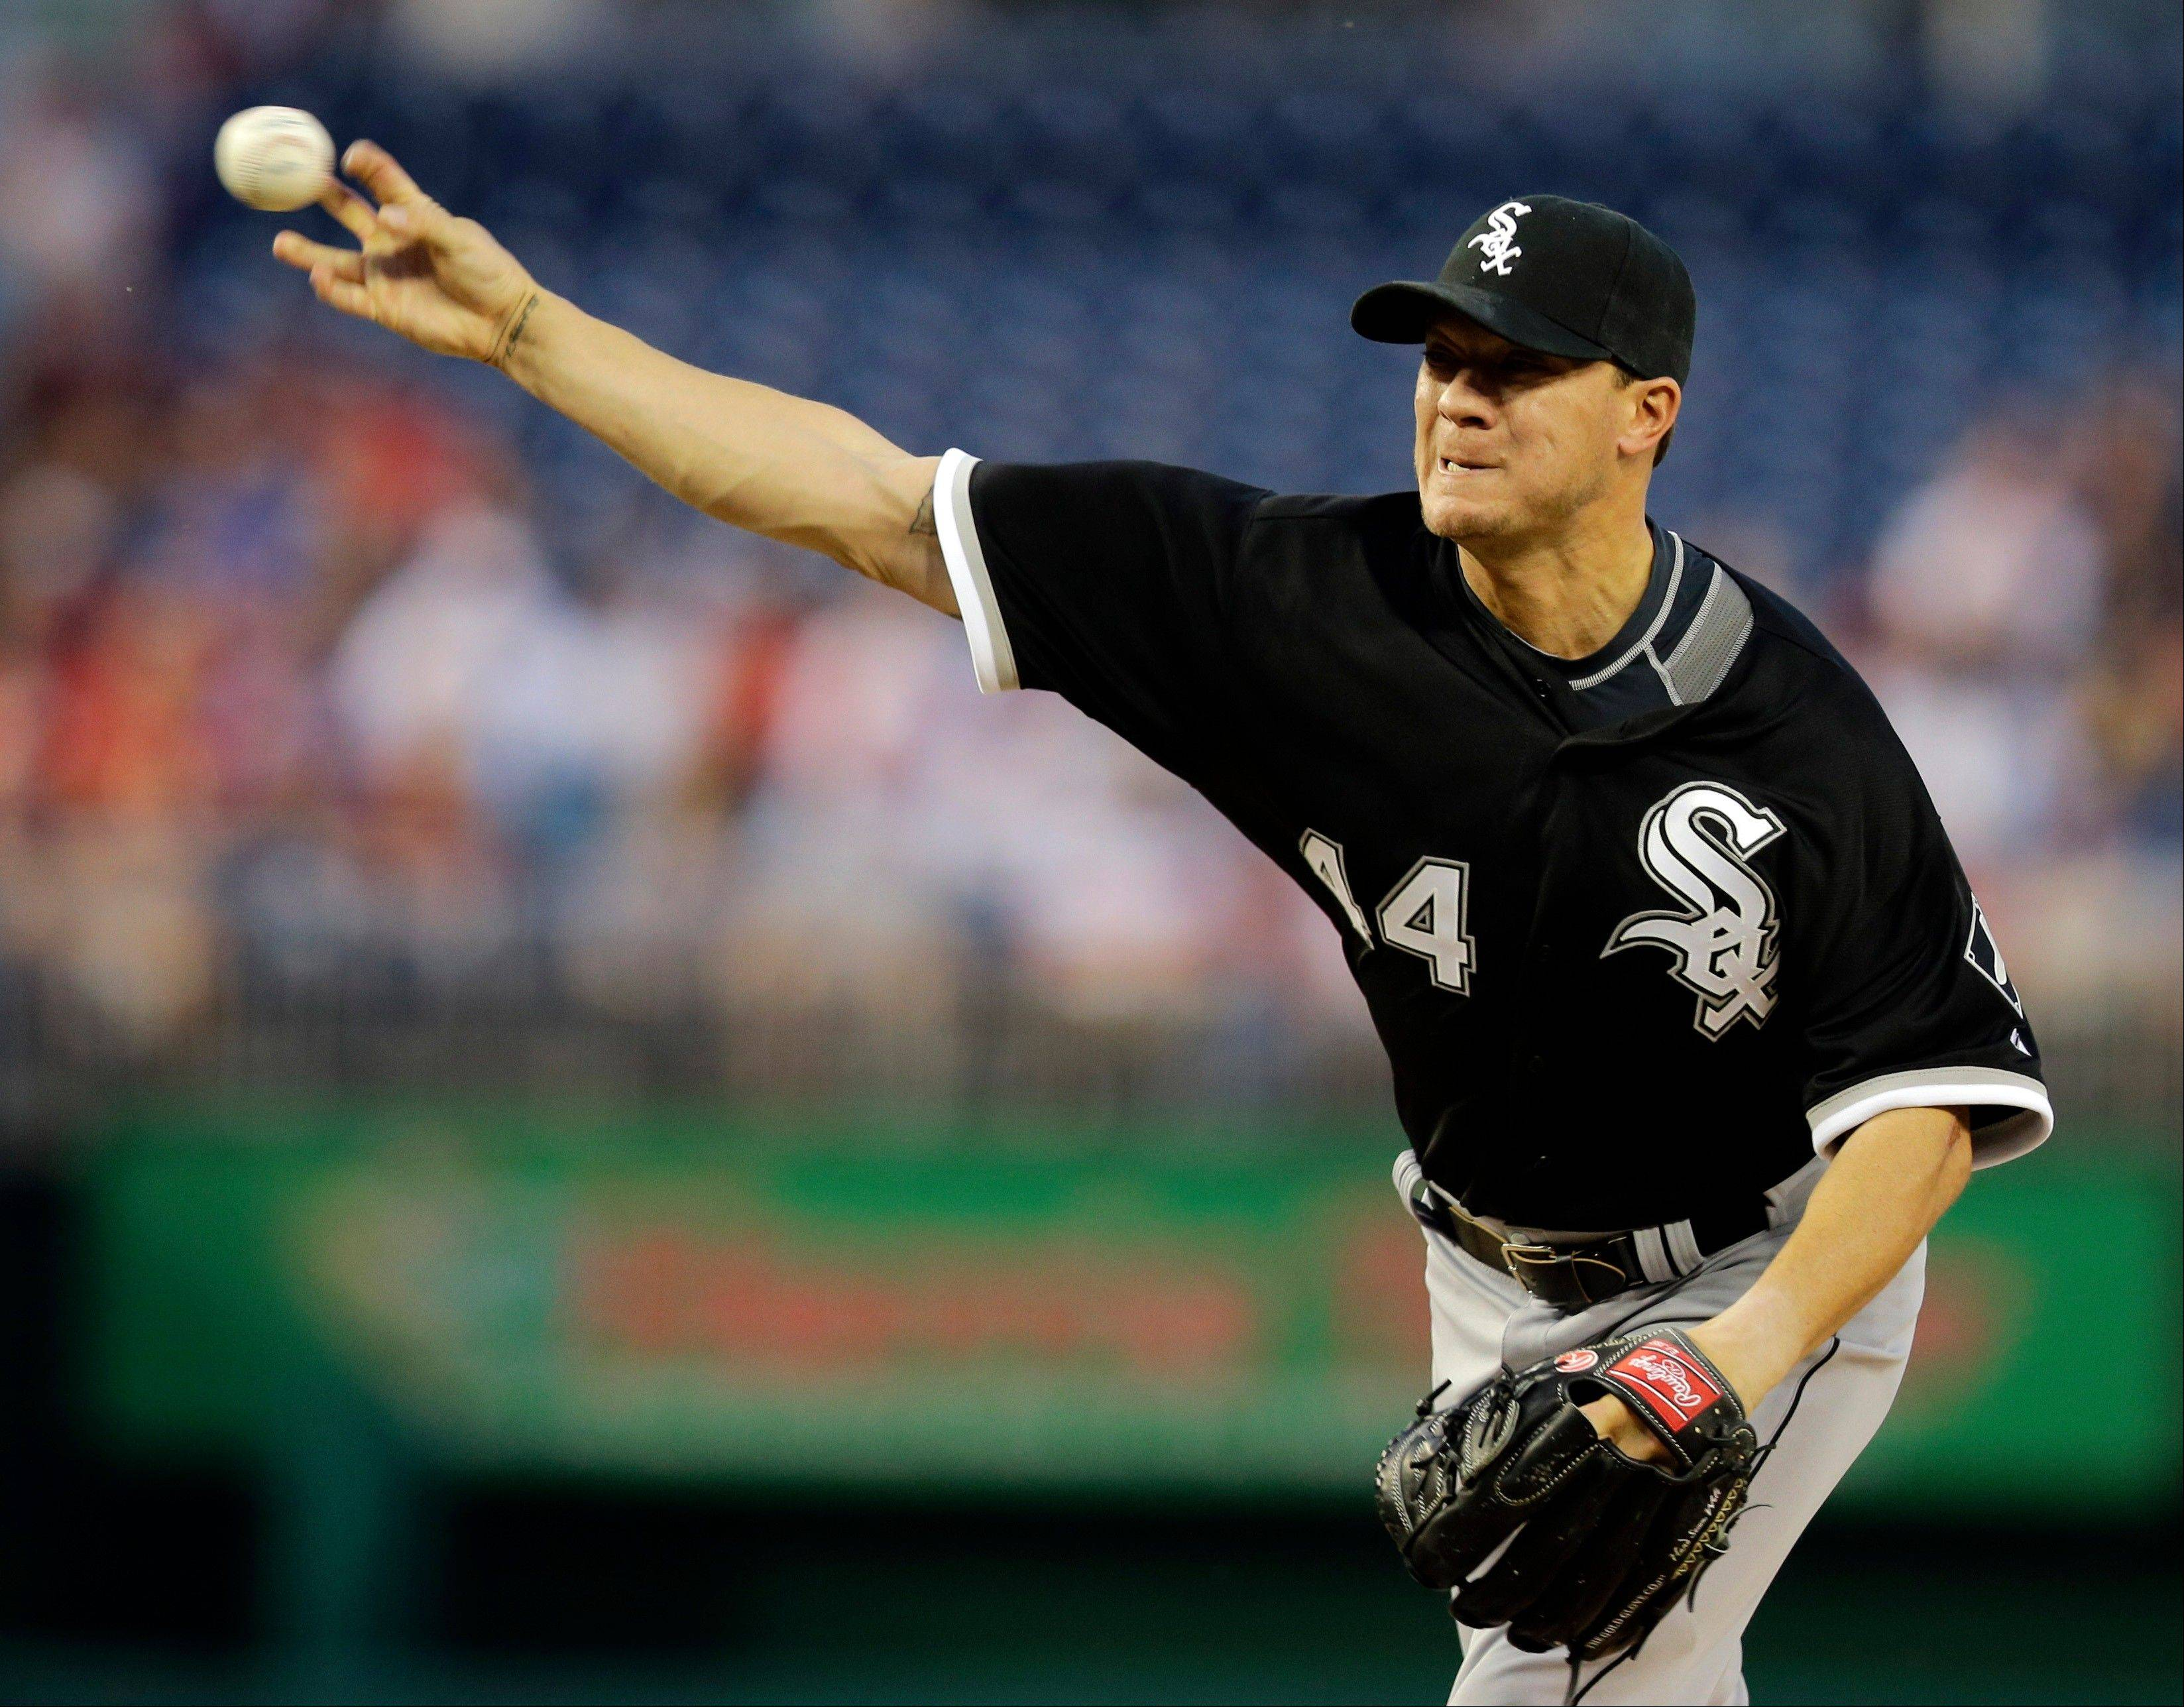 Chicago White Sox starting pitcher Jake Peavy (44) throws during the first inning of an interleague baseball game against the Washington Nationals at Nationals Park Tuesday, April 9, 2013, in Washington. (AP Photo/Alex Brandon)